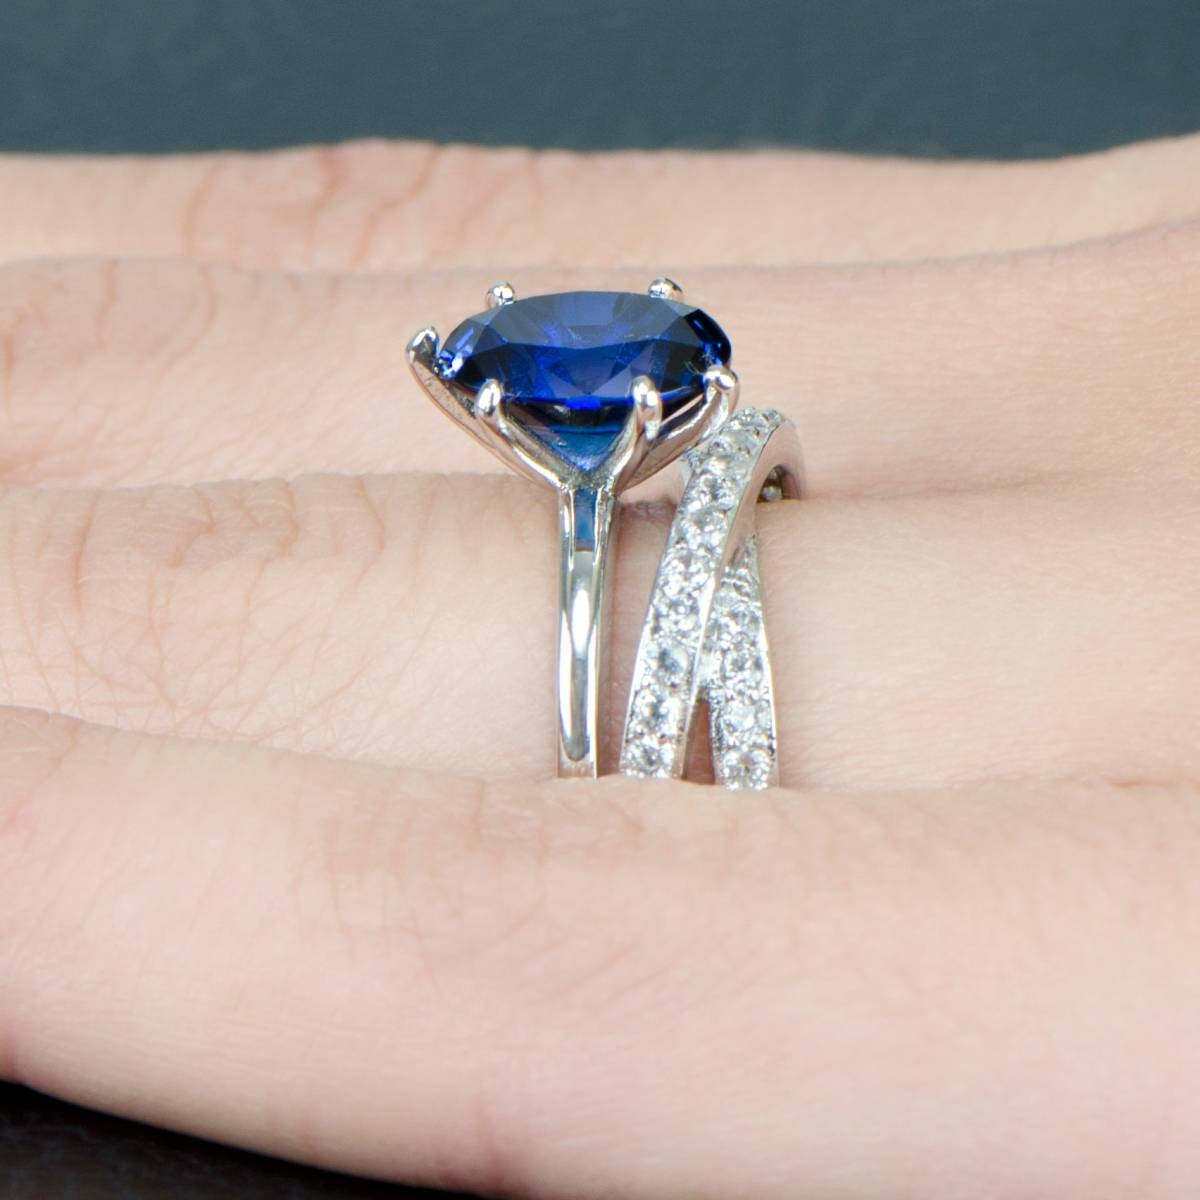 Blue Cz Unique Wedding Ring Set With Unique Wedding Rings Sets (View 10 of 15)